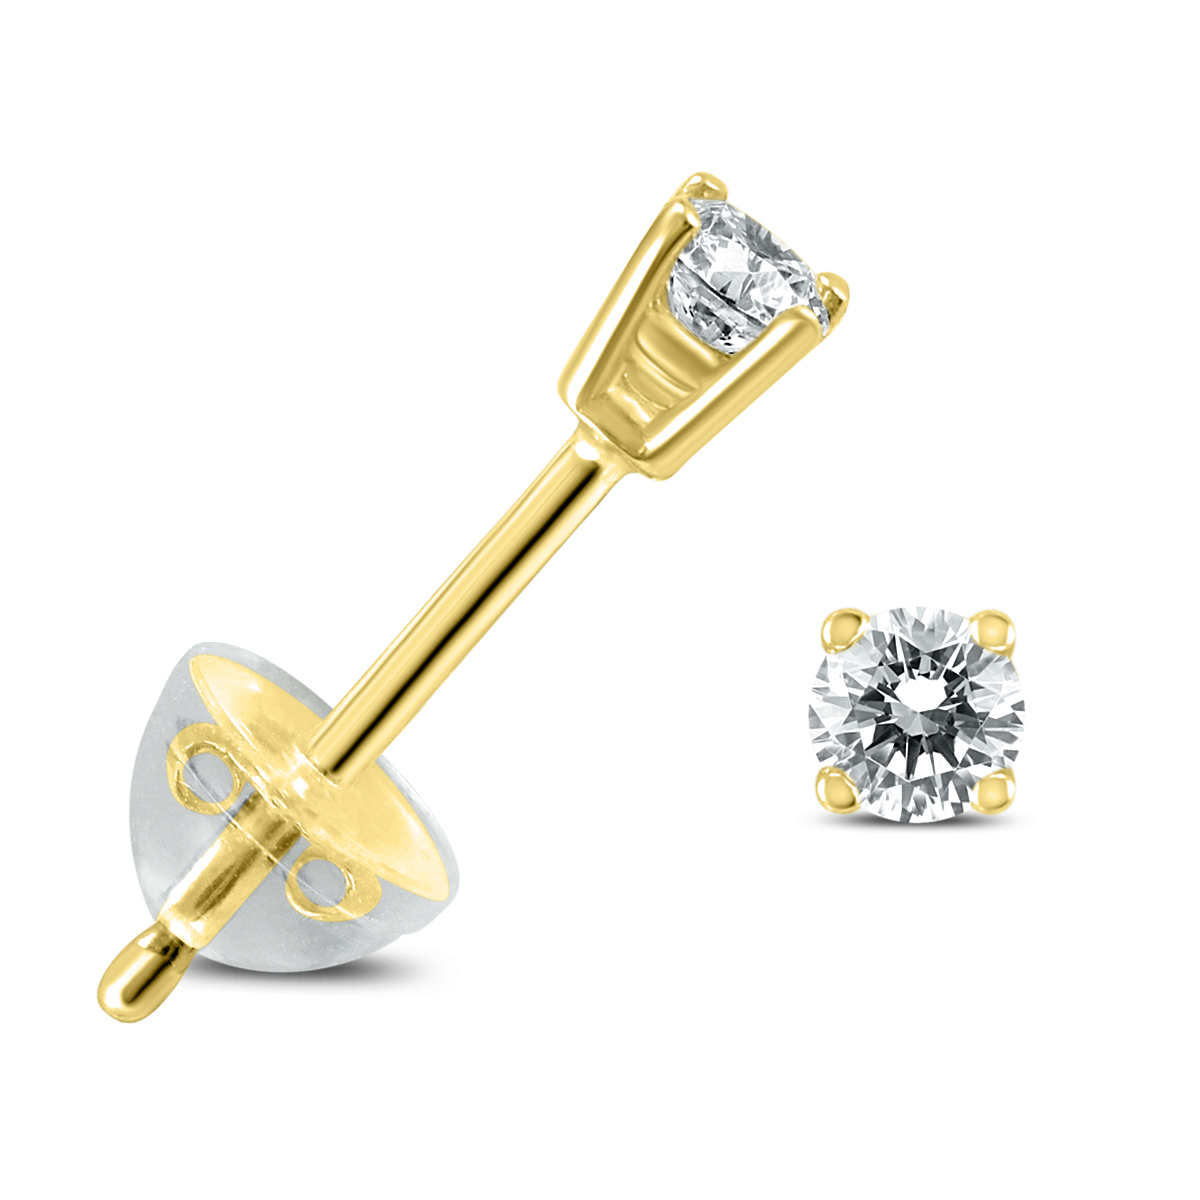 .07CTW Round Diamond Solitaire Stud Earrings In 14k Yellow Gold with Silicon Backs